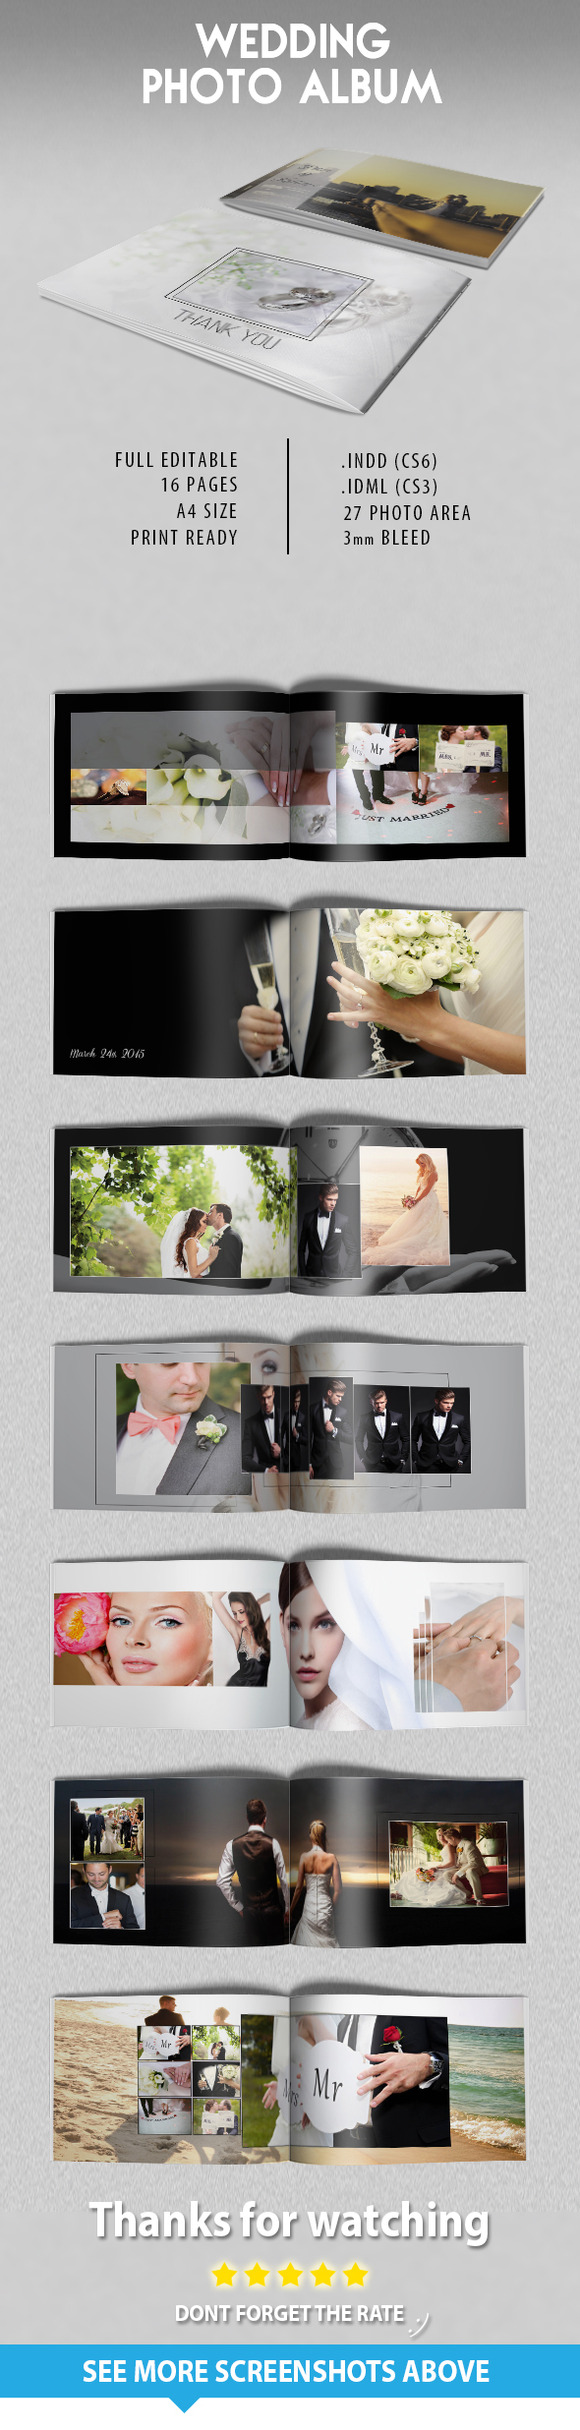 Wedding Photo Album Catalogue